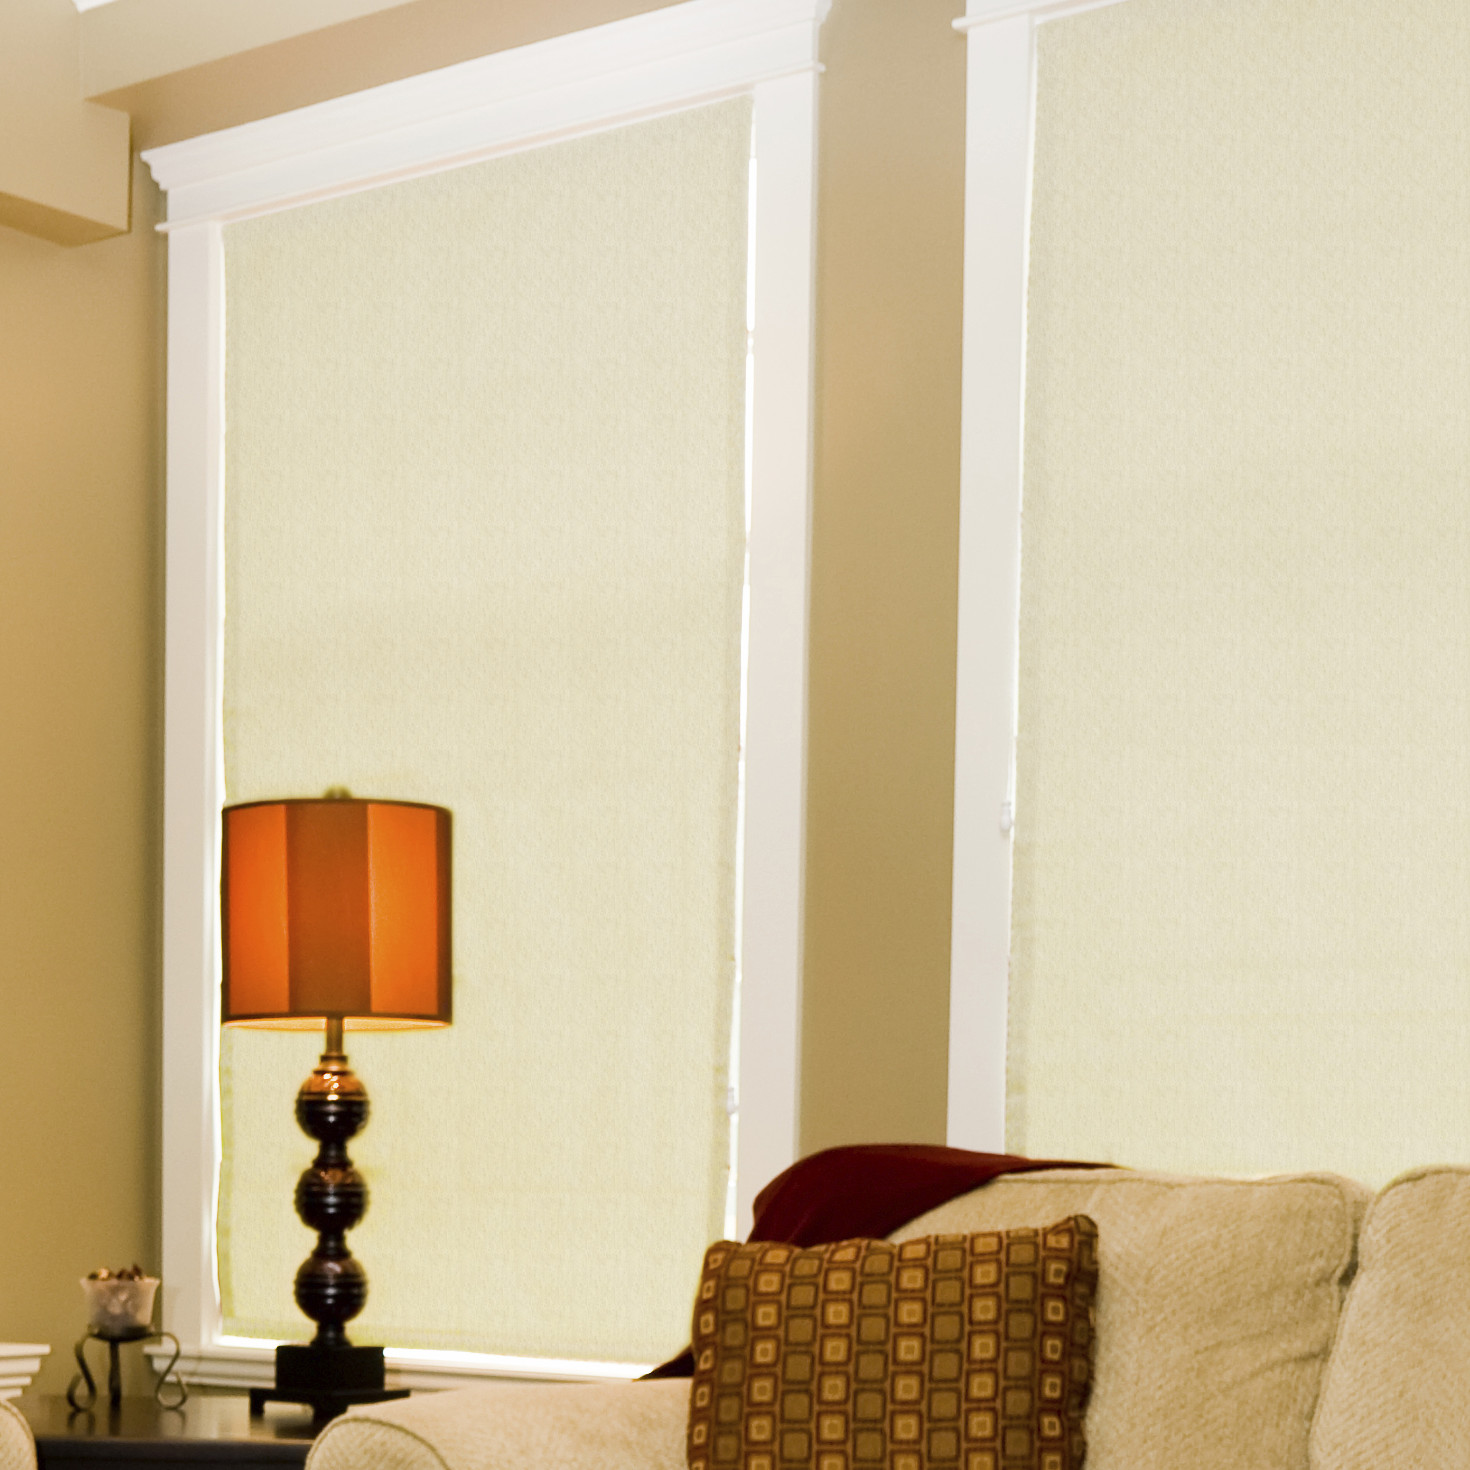 Excellent Menards Window Blinds for Best Window Blind Ideas: Menards Weekly Ads | Menards Window Blinds | Menards Michigan